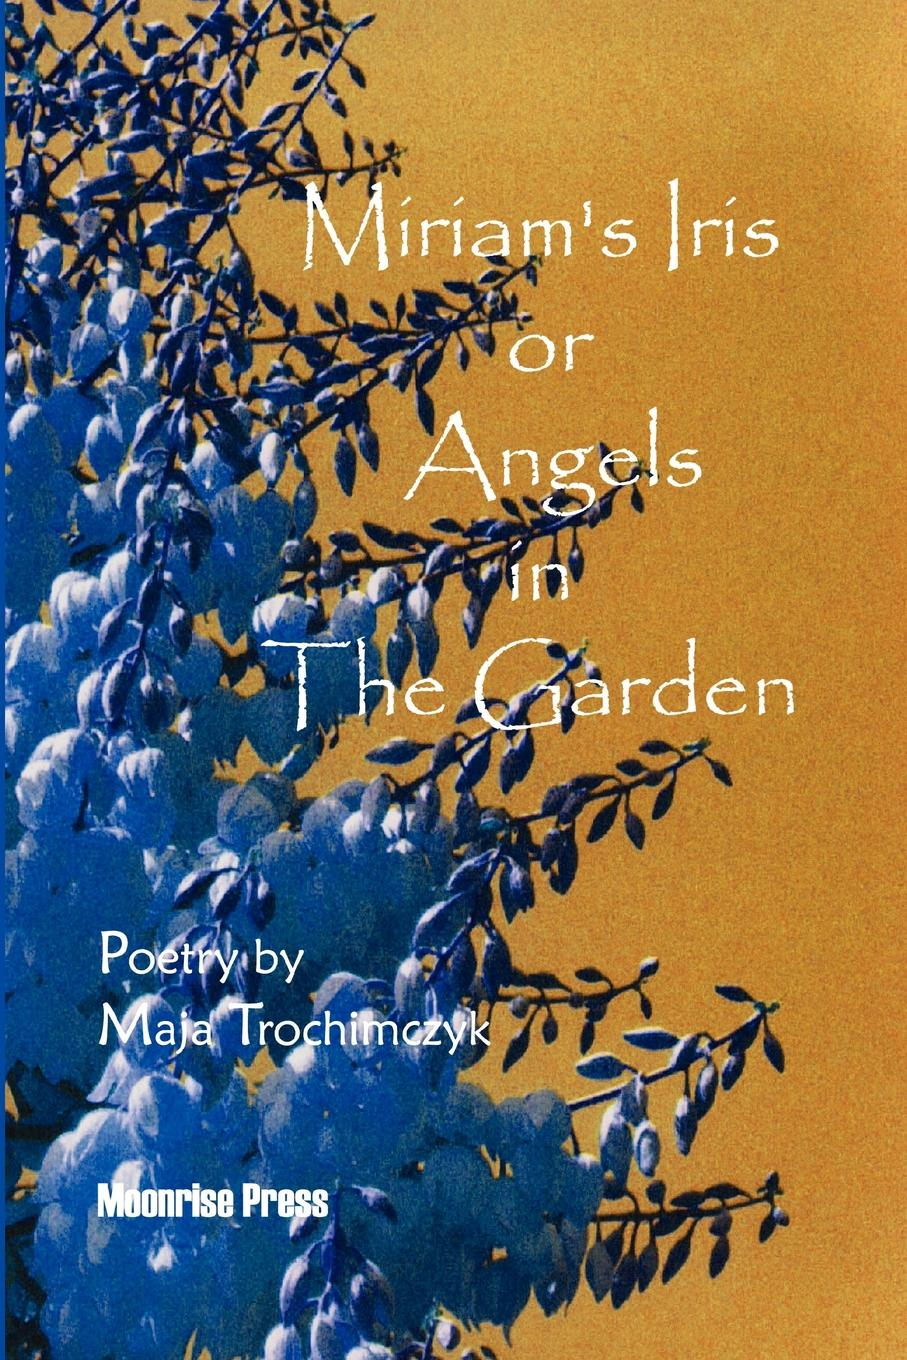 Maja Trochimczyk Miriam.s Iris, or Angels in the Garden in the arms of an angel